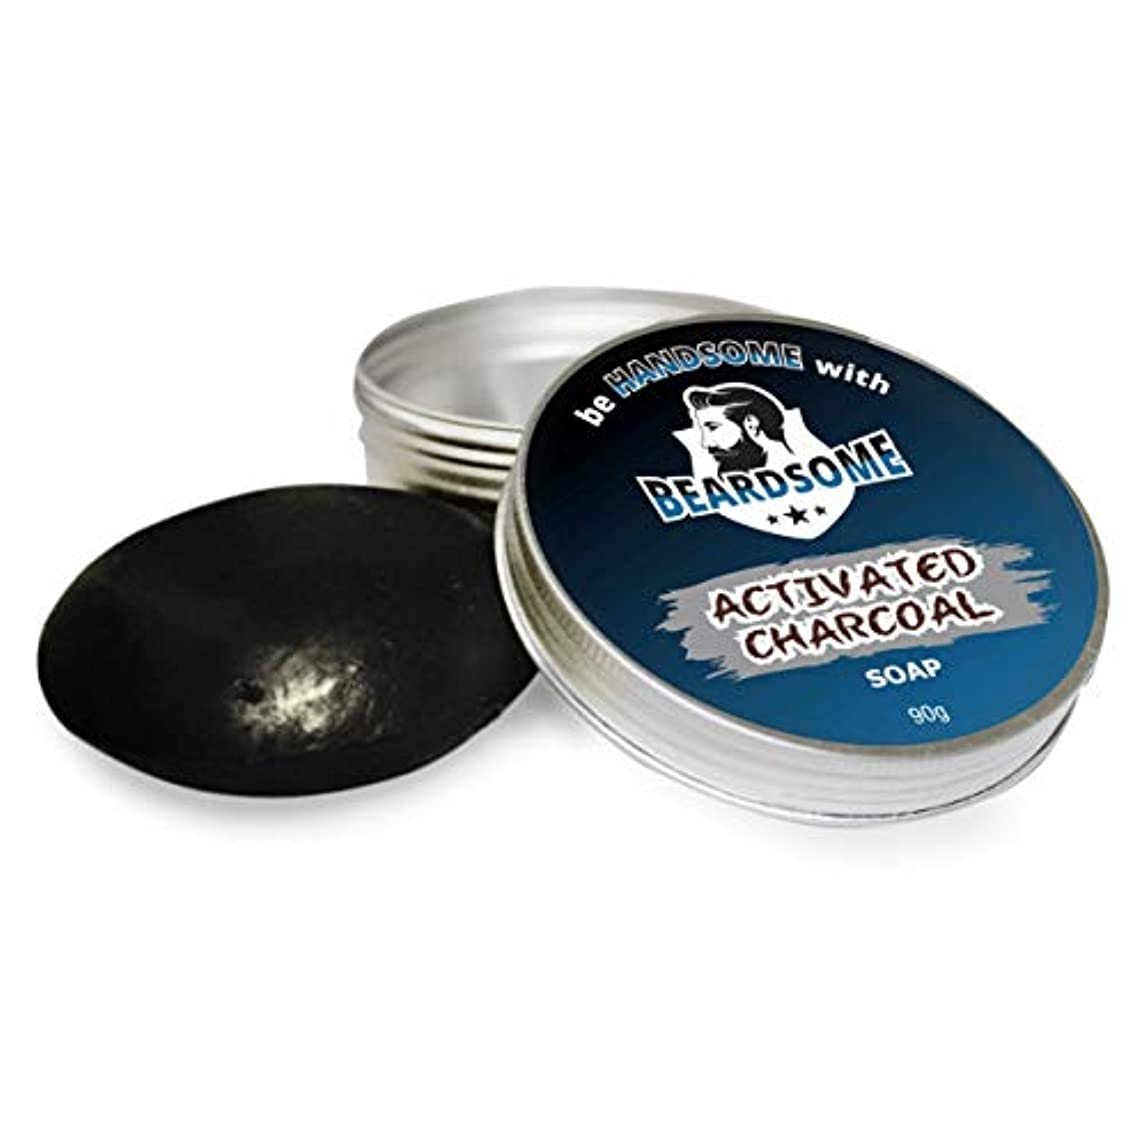 BEARDSOME Activated Charcoal Soap For Men 90g